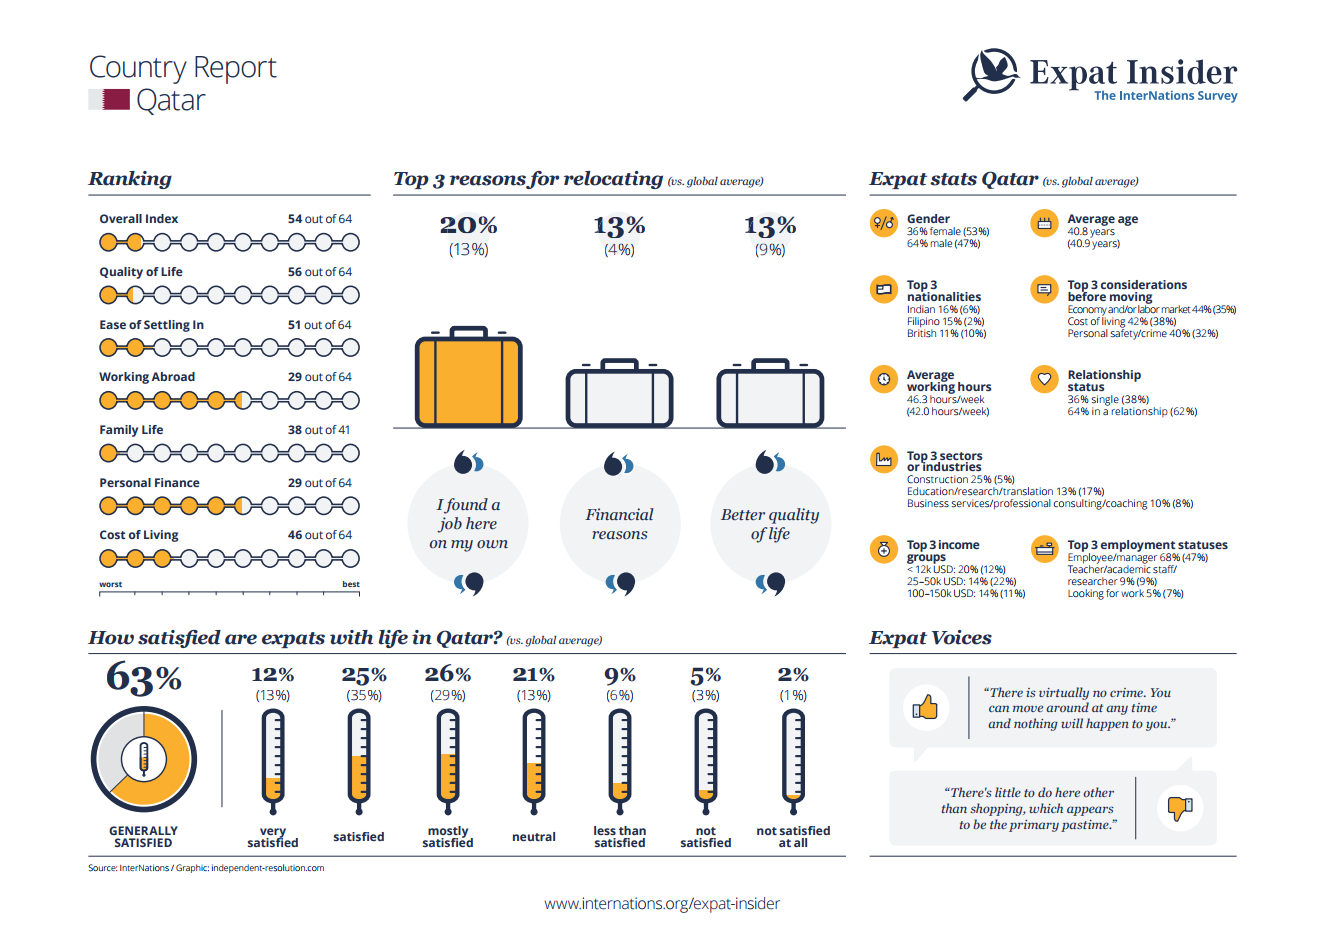 Expat Insider 2015: How Expats like Living & Working in Qatar